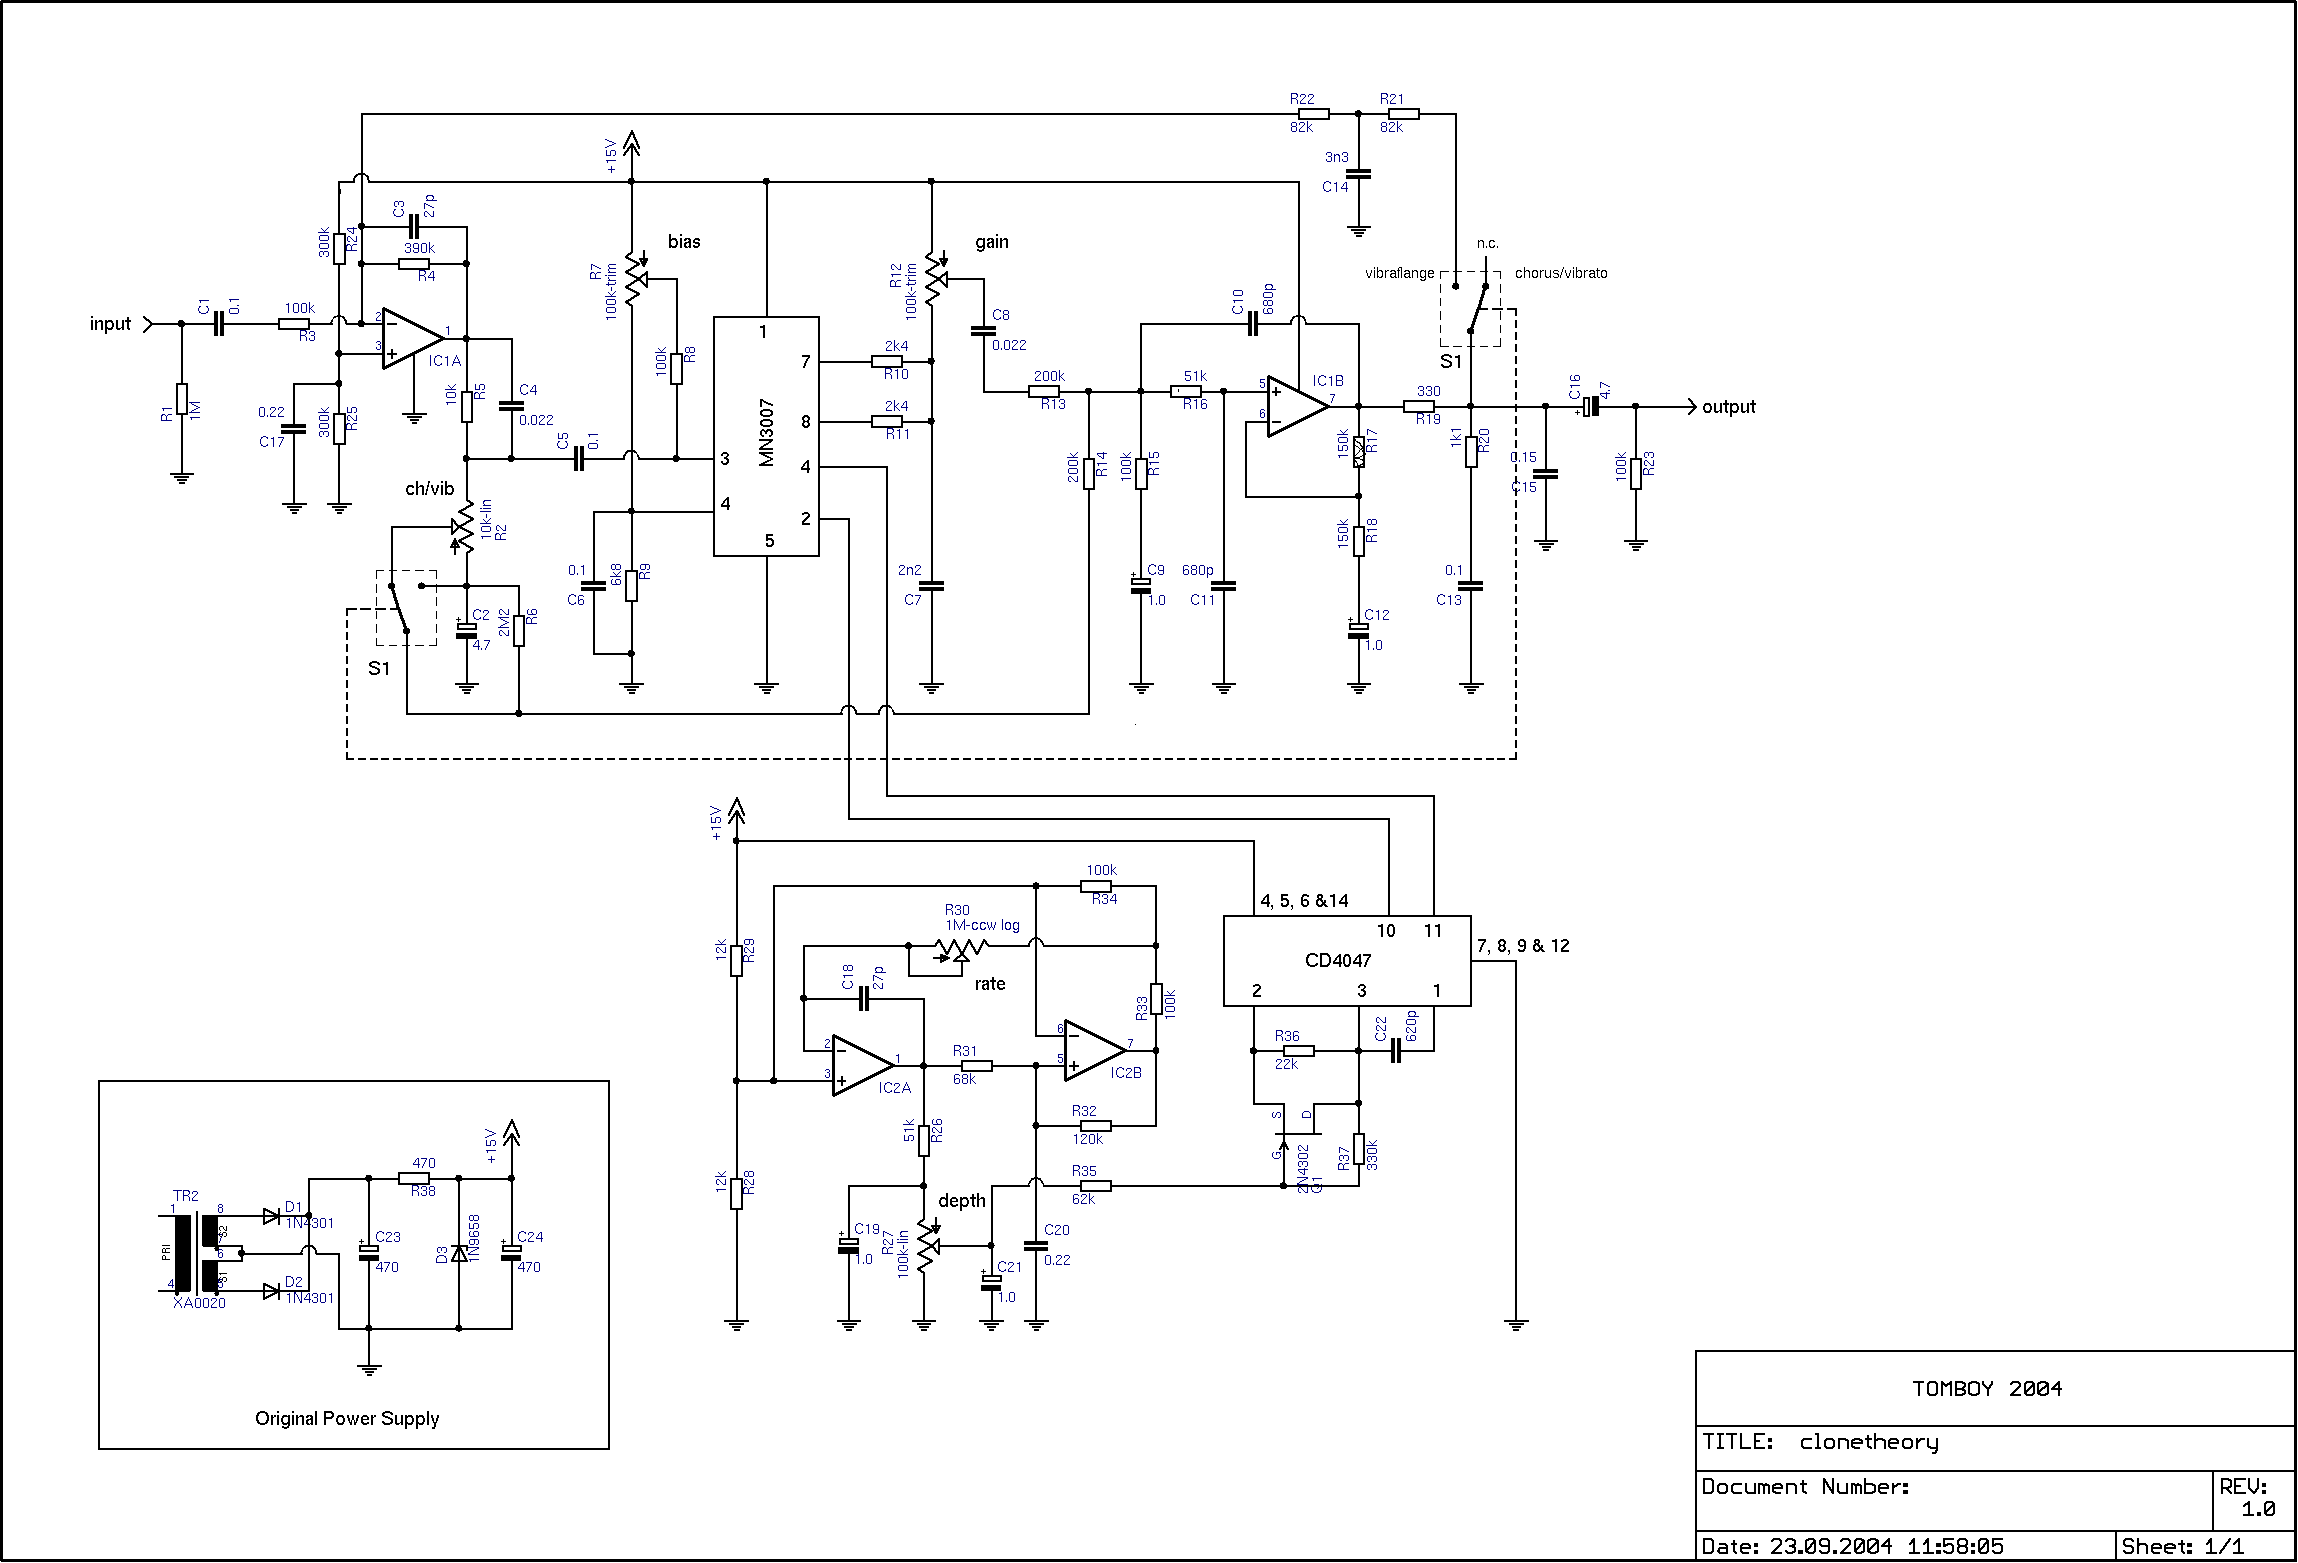 Use Cd4013 Cd4047 In Place Of Mn3101 Clock Pulse Generator With Cd4049 Circuit Diagram This Help